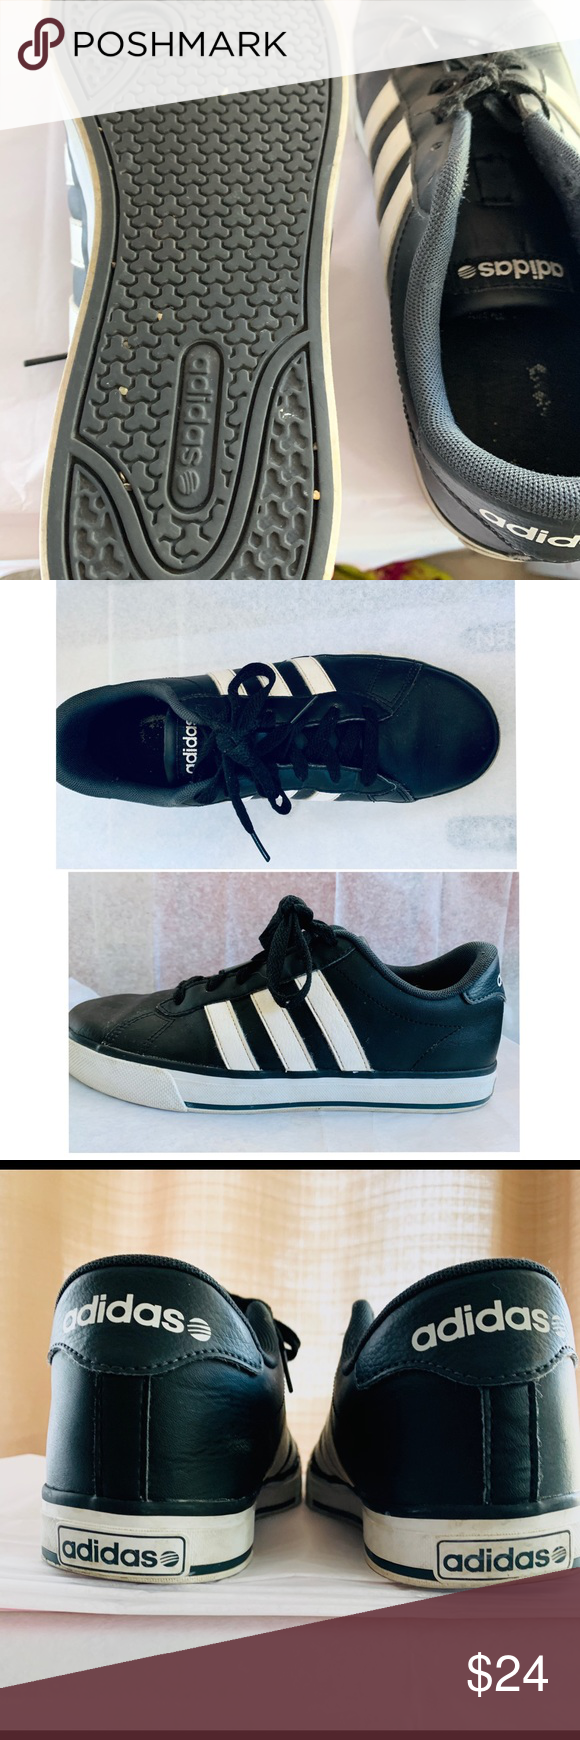 Adidas Neo label Shoes in 2020   Adidas